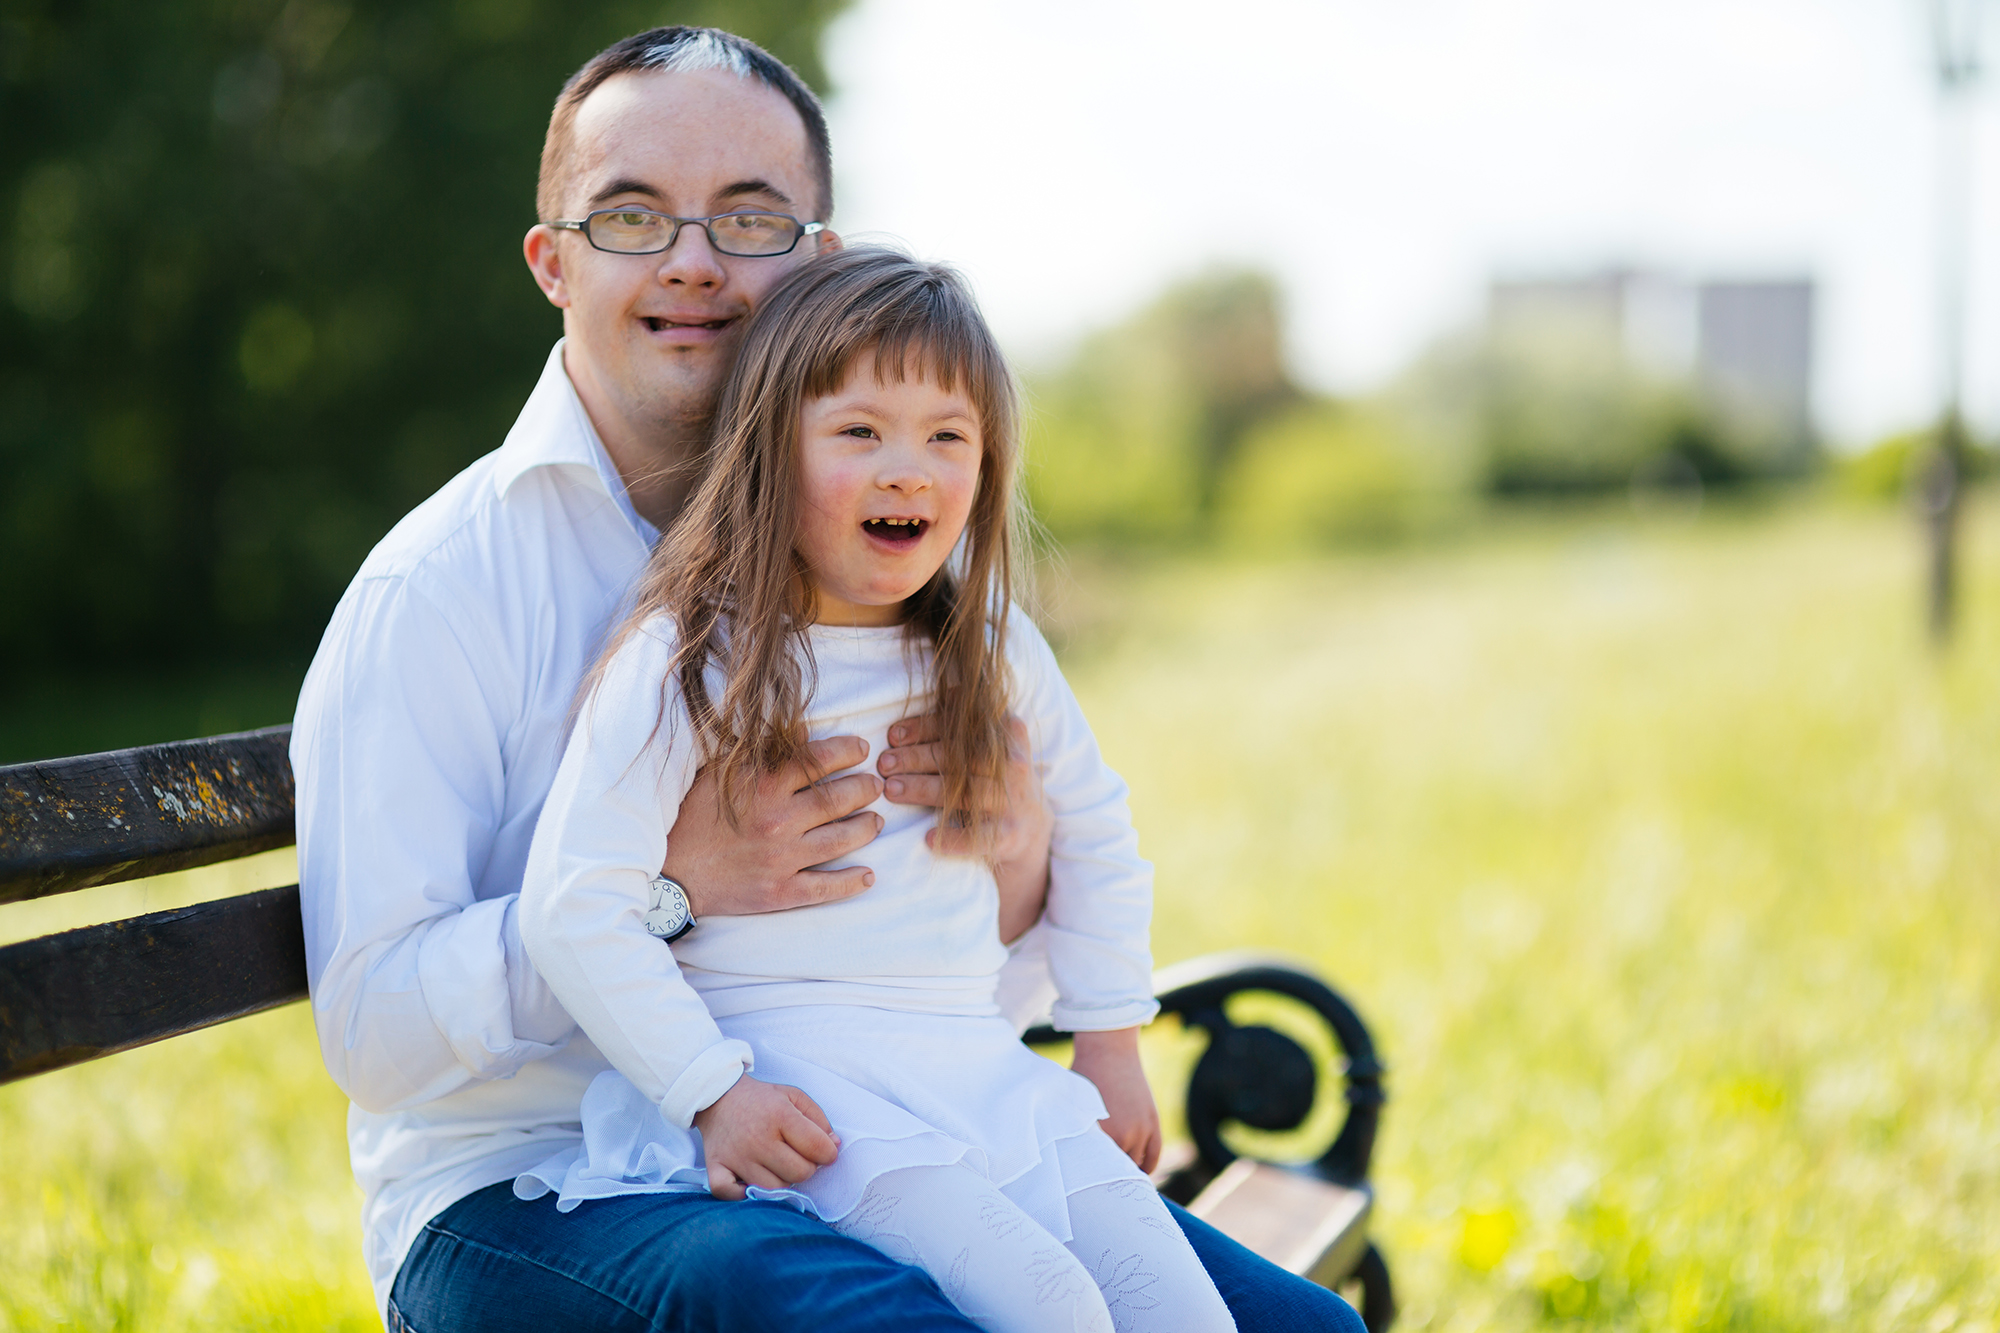 People with down syndrome sharing positive emotions